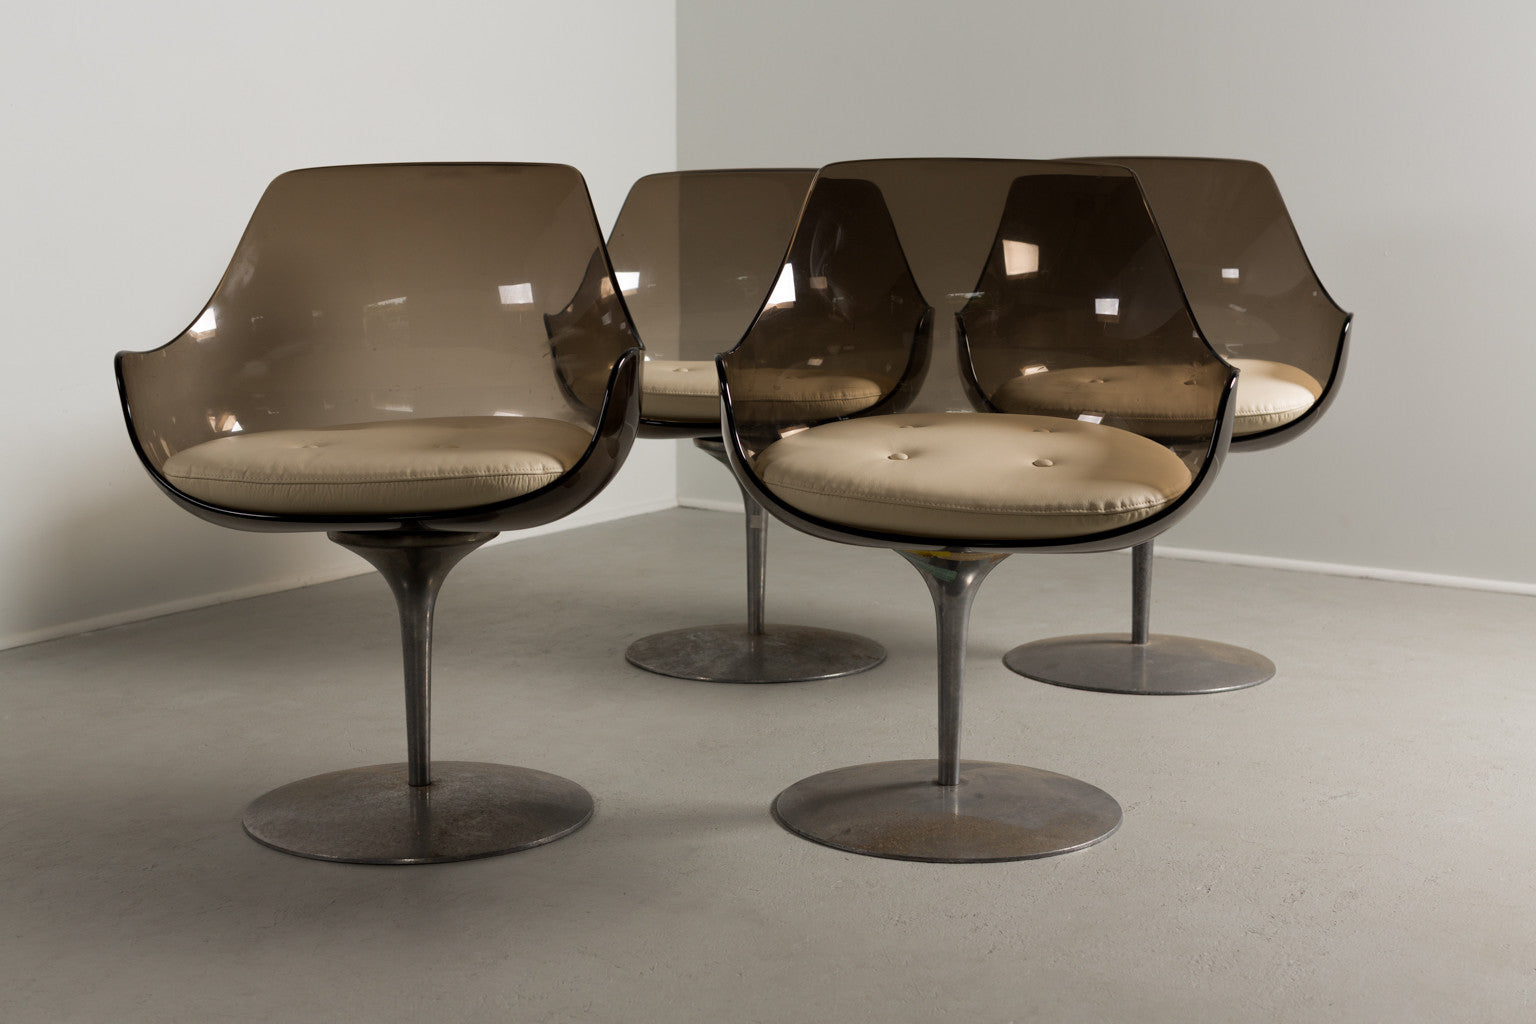 Erwine & Estelle Laverne Champagne Chairs, Set of Four, 1960s - The Exchange Int